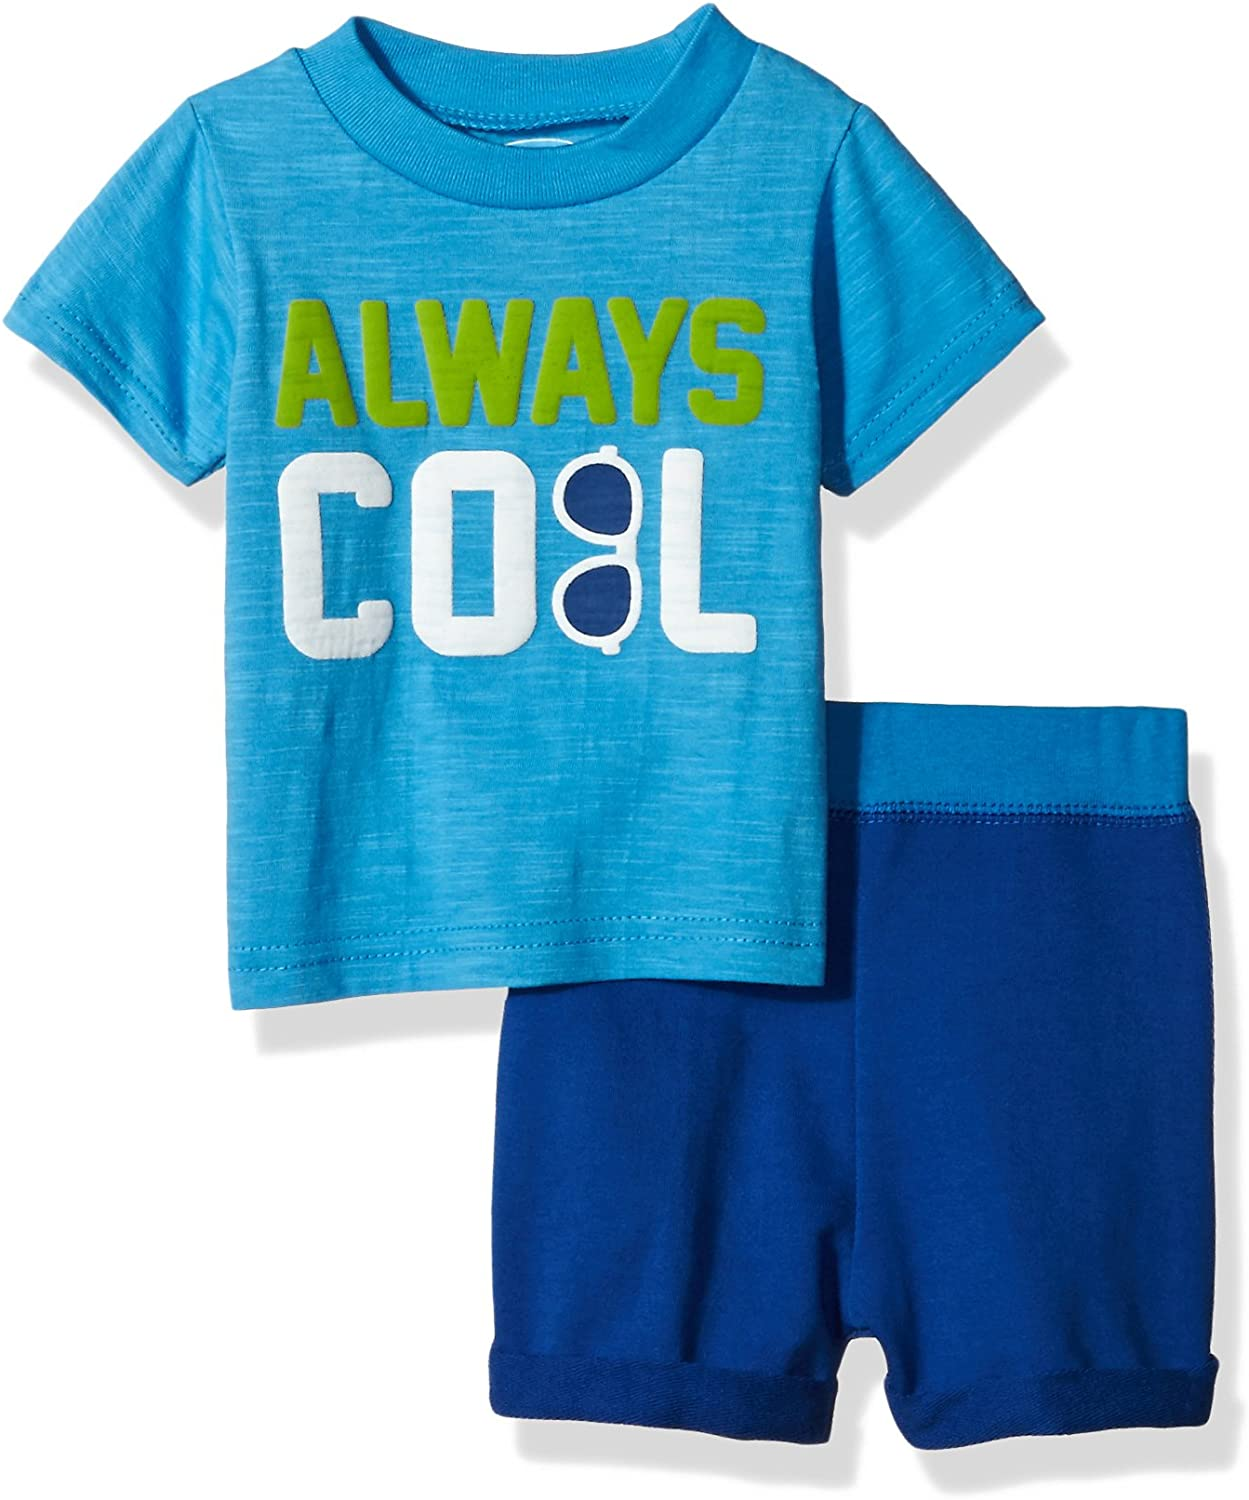 Bon Bebe Baby Boys 2 Pc French Terry Set with Short Sleeve Top